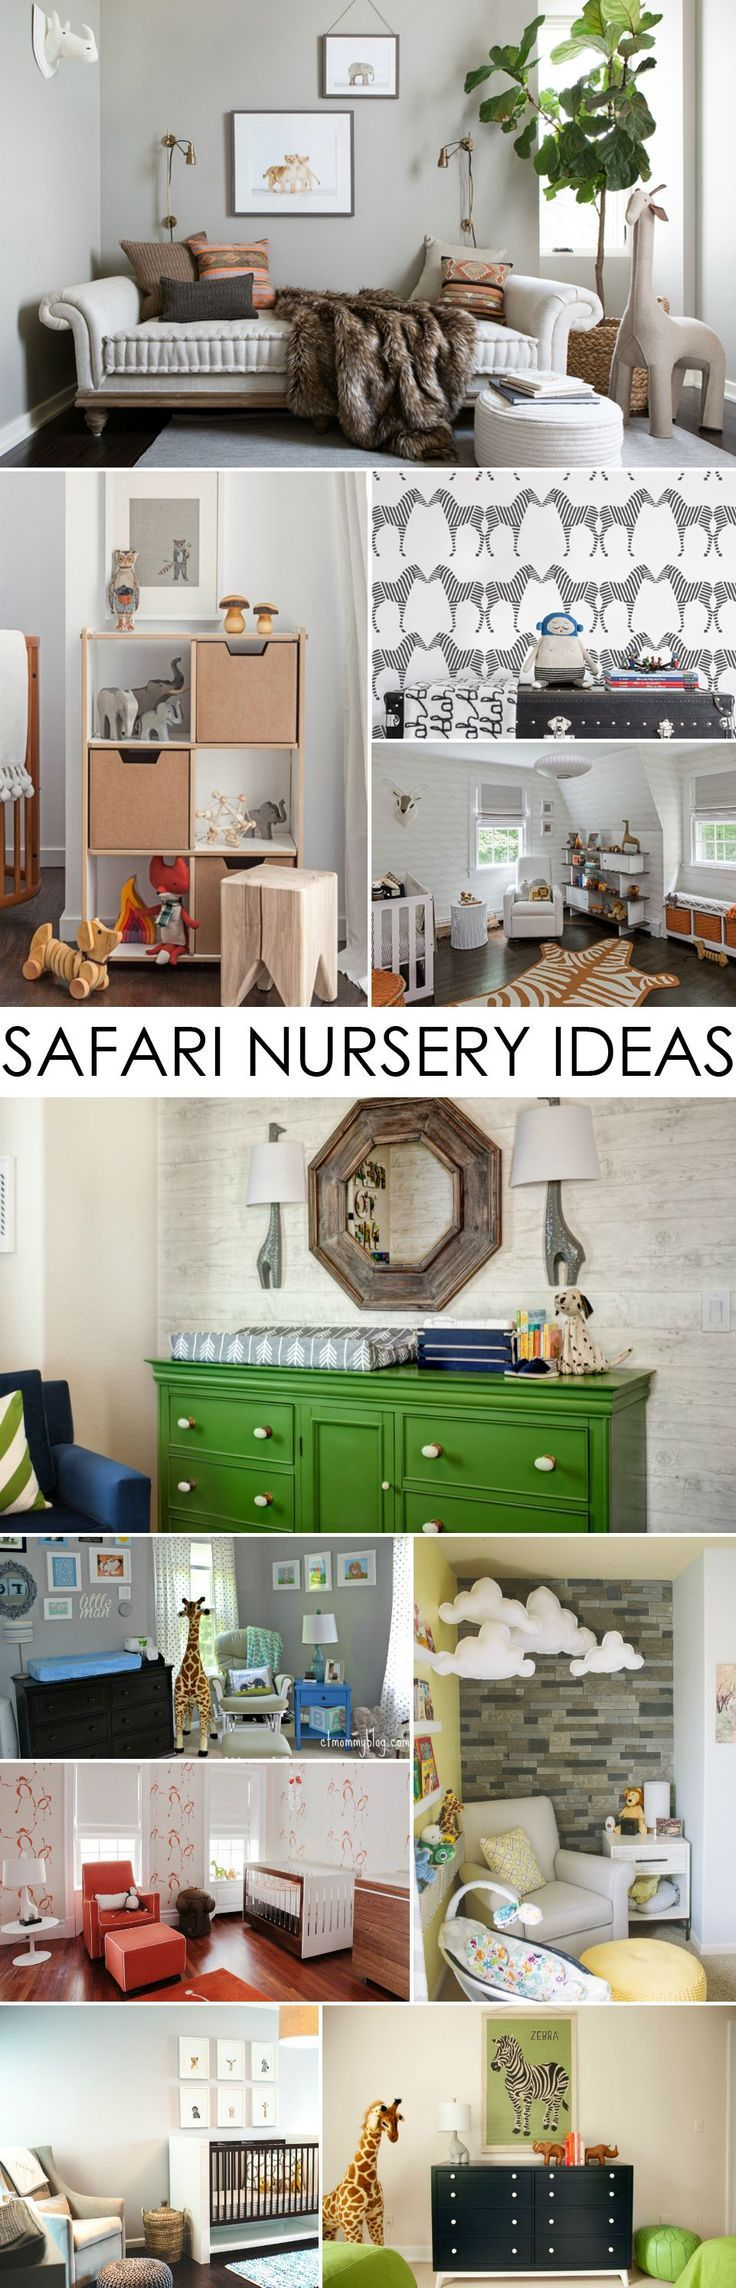 94 best Safari Theme | Nursery \u0026 Baby Registry images on Pinterest ...